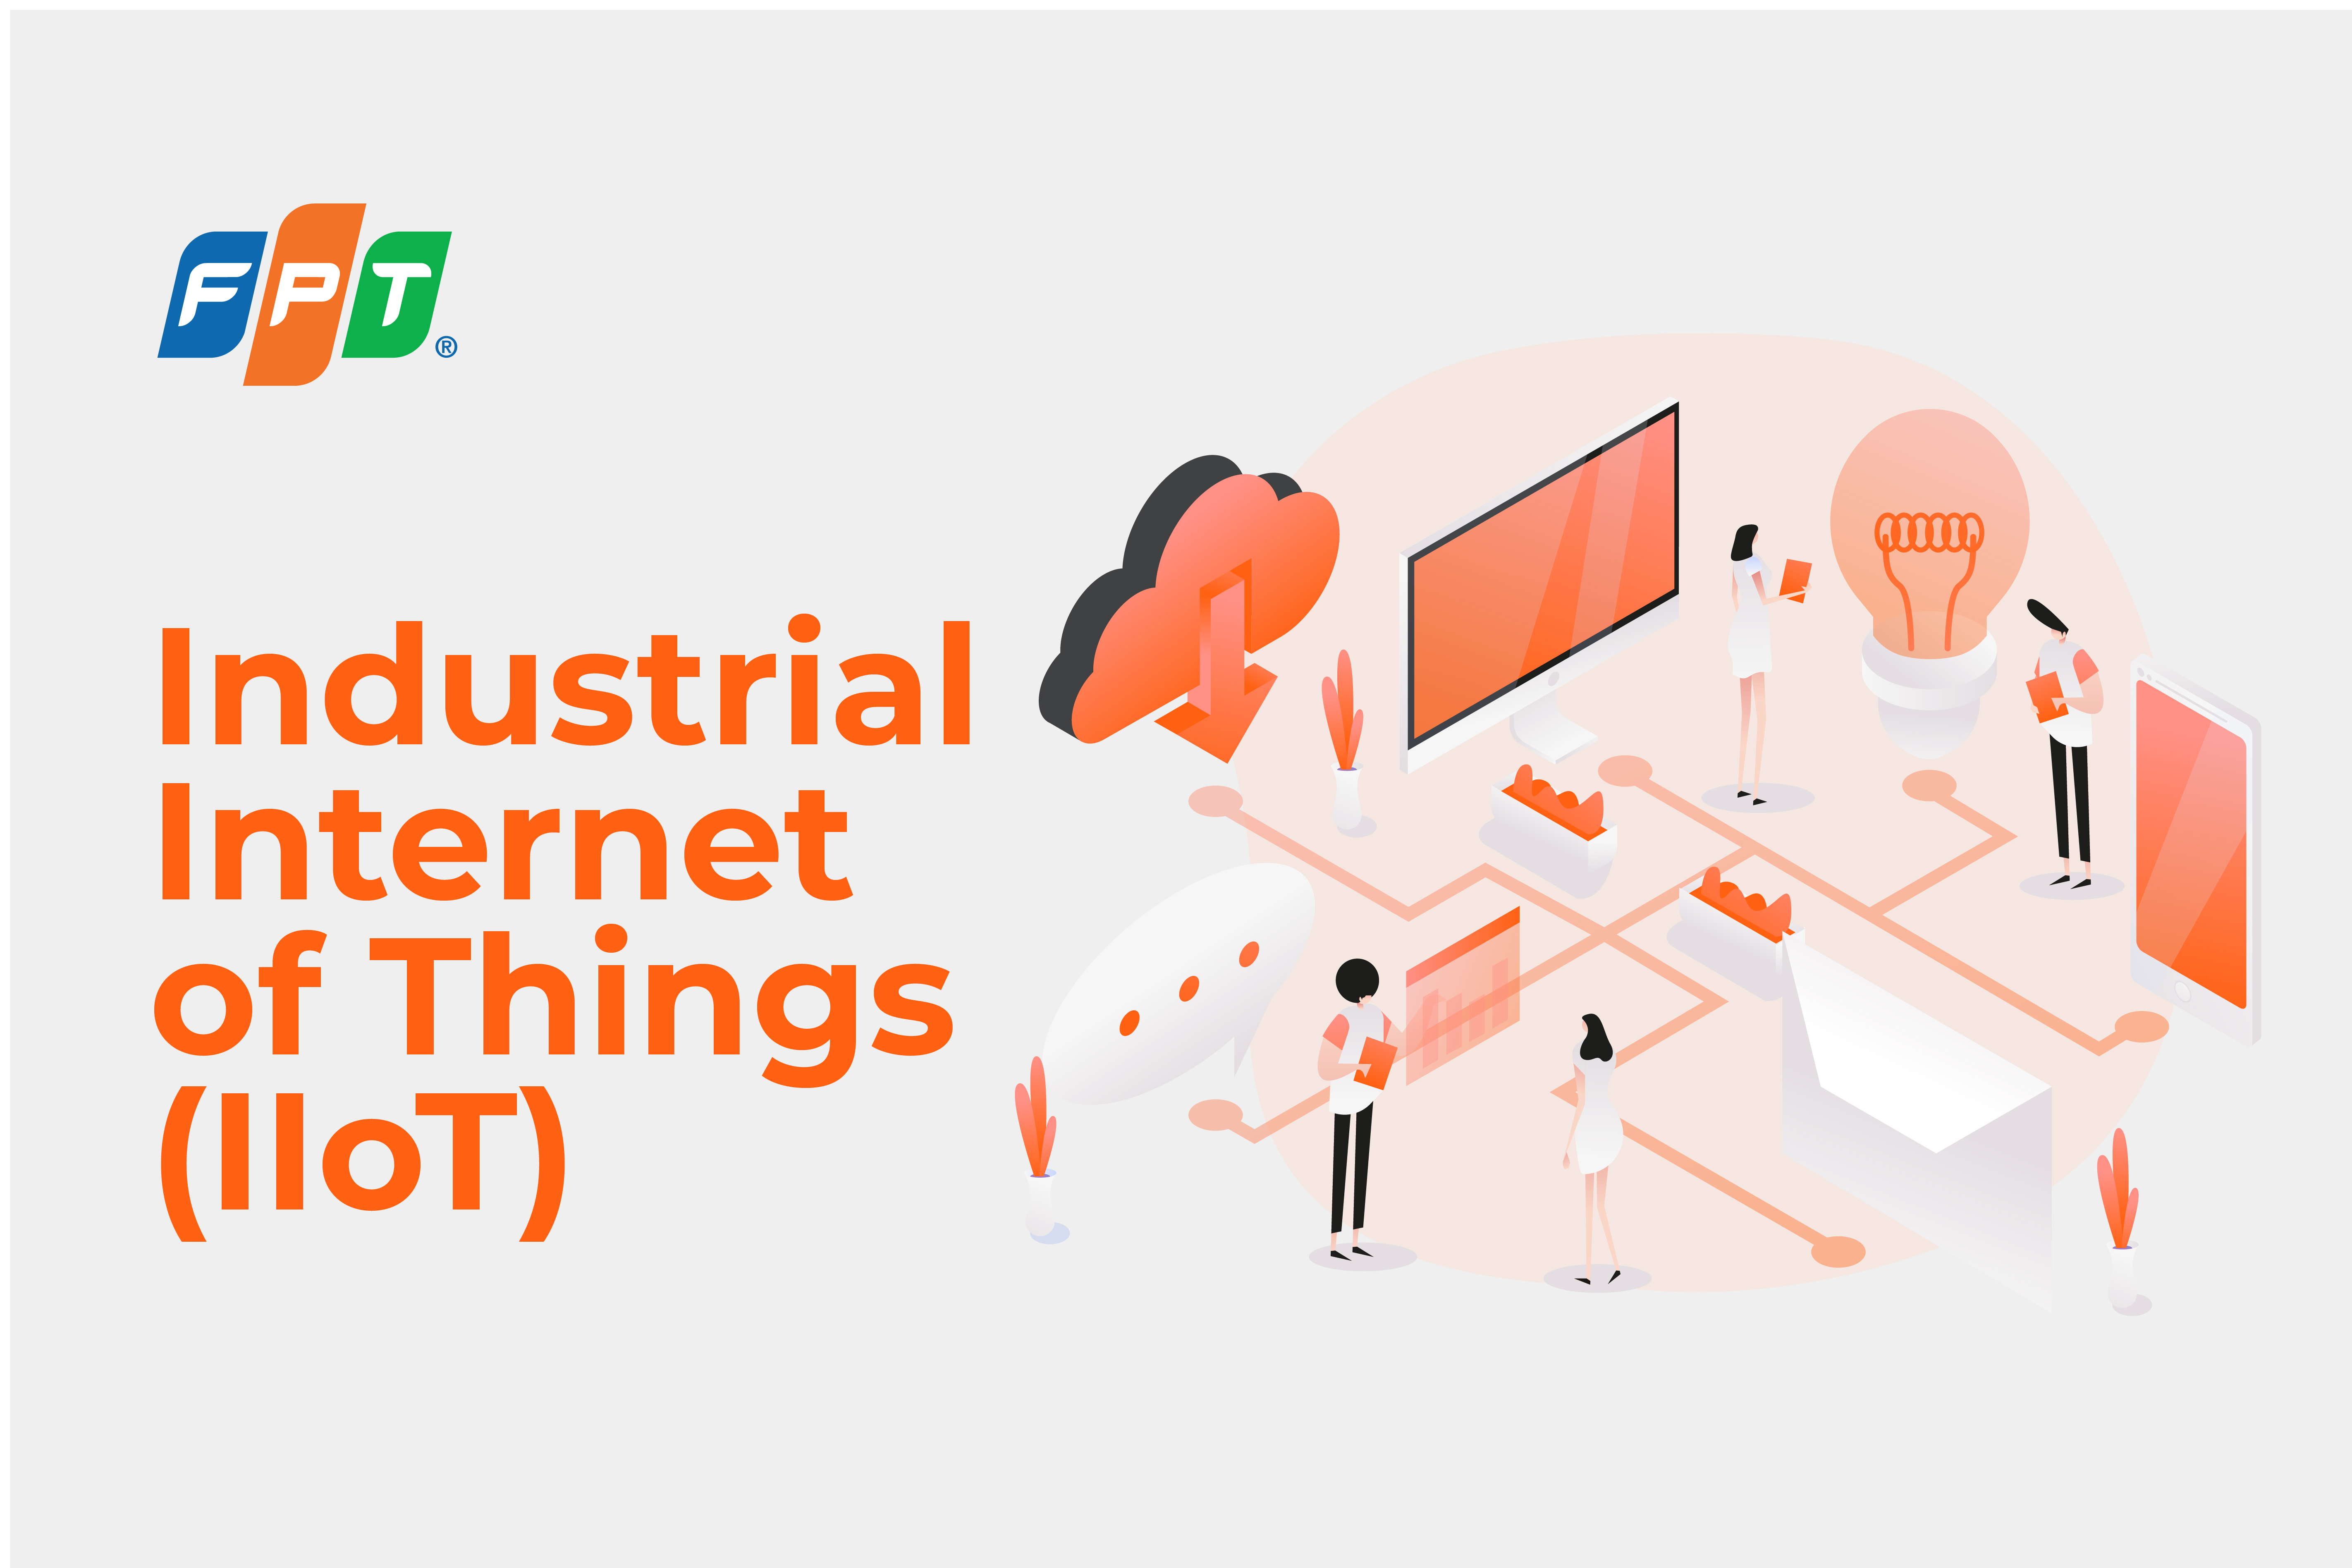 Industrial Internet of Things - Gateway to Building Smart Factories